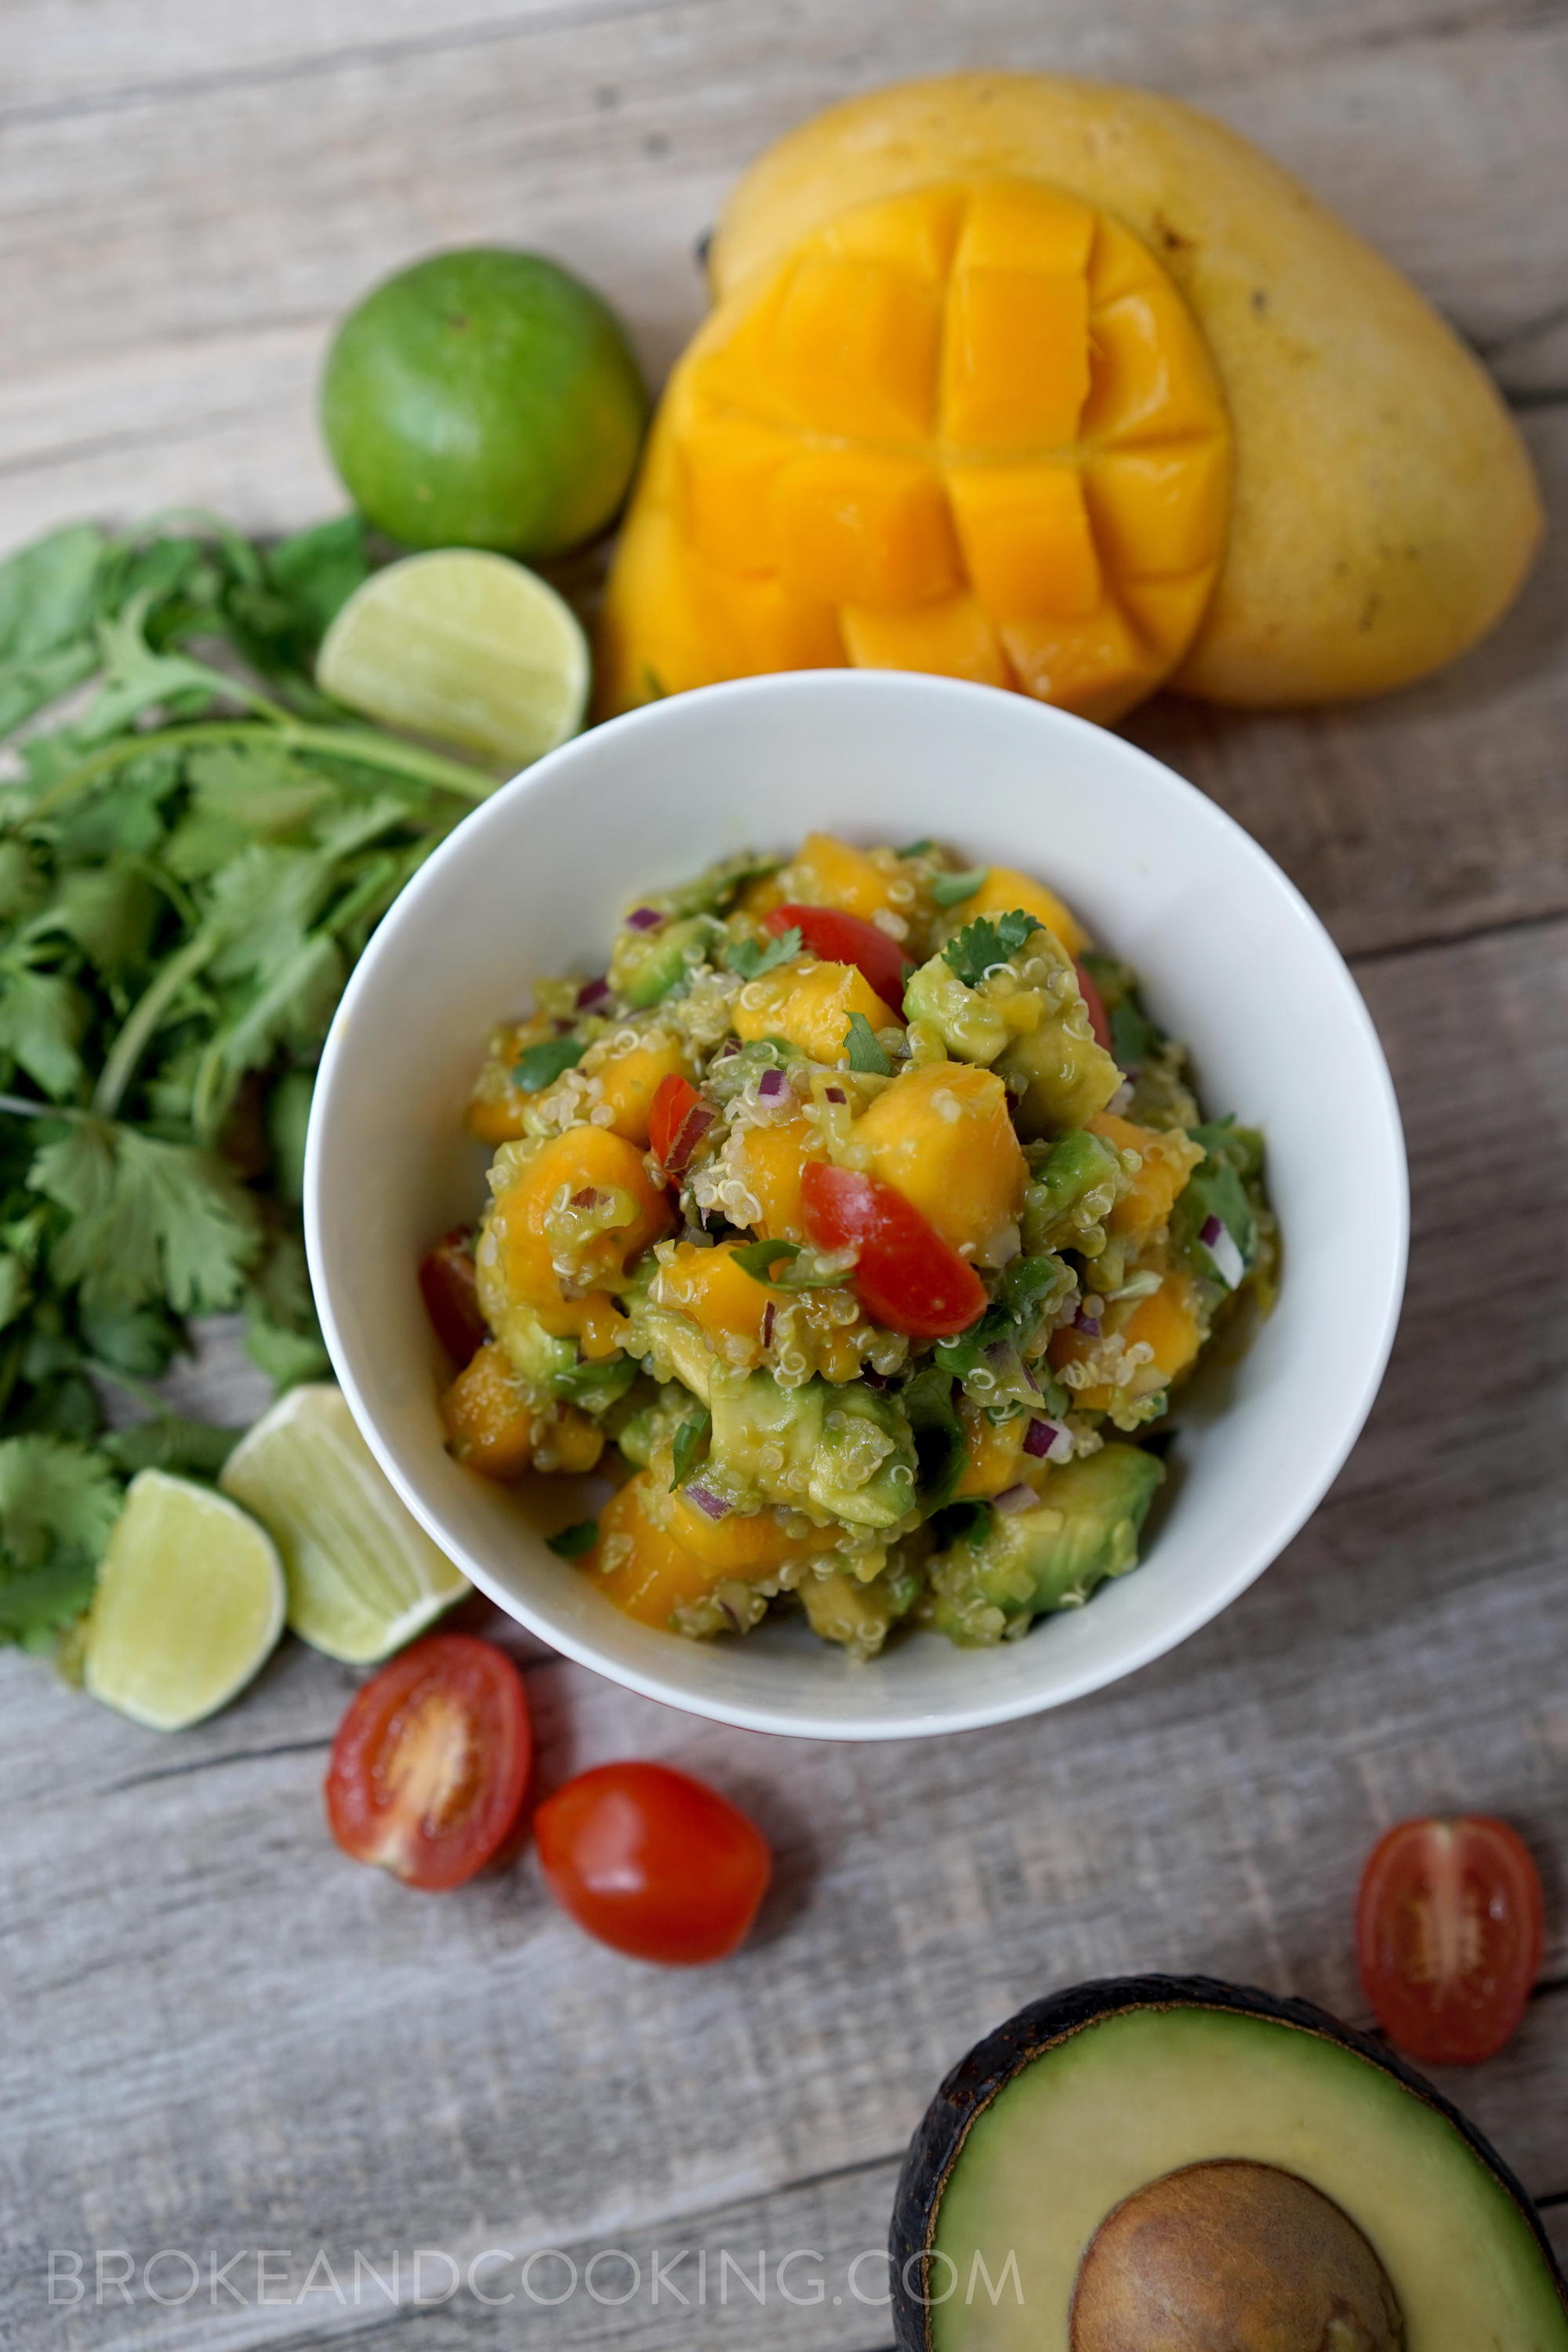 Broke and Cooking Mango Avocado Quinoa Salad with Lime Vinaigrette 13